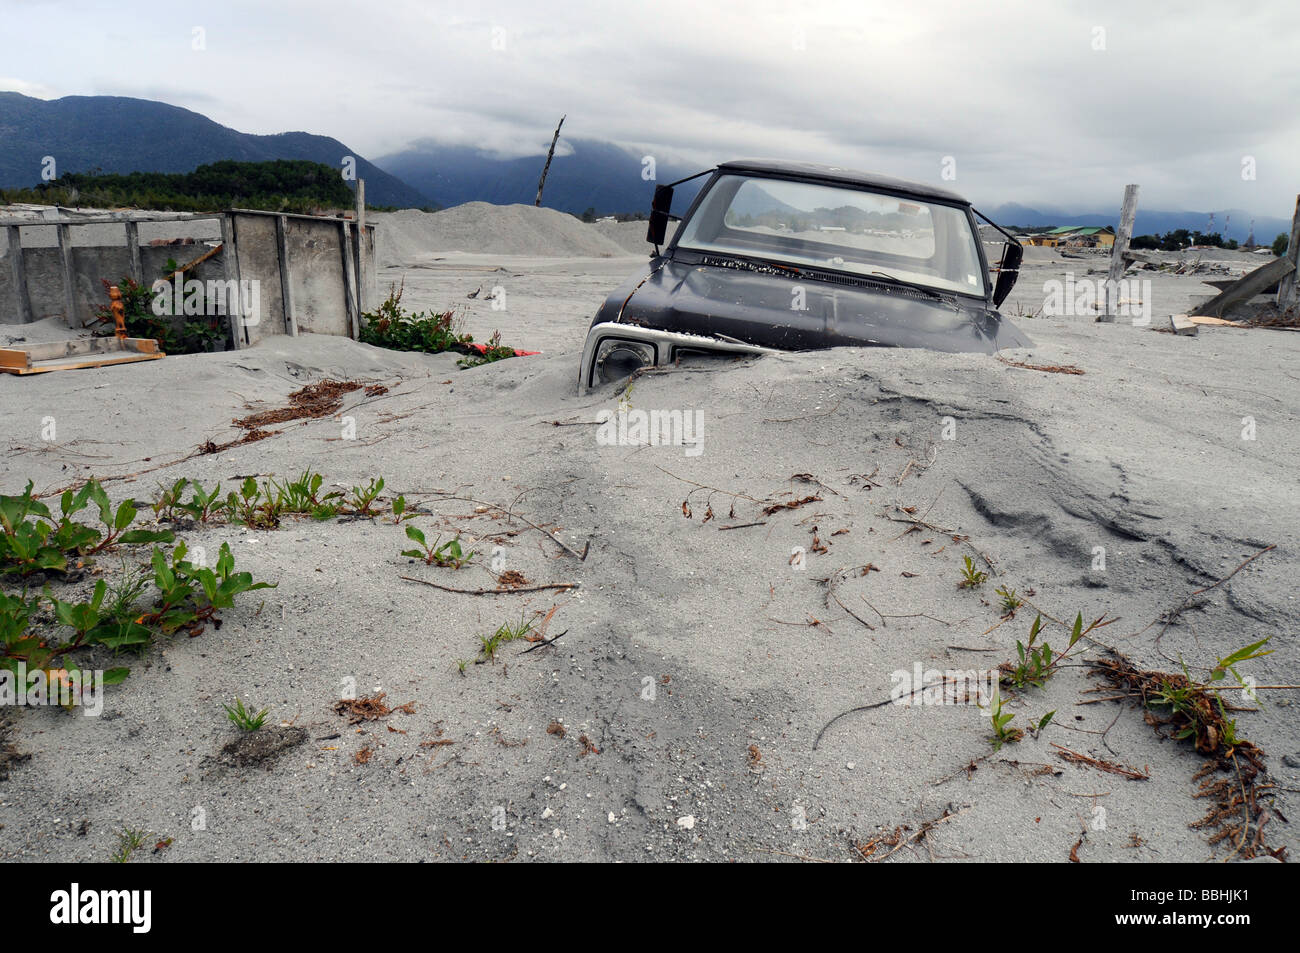 A buried car in the destroyed town of Chaiten after the volcanic eruption - Stock Image